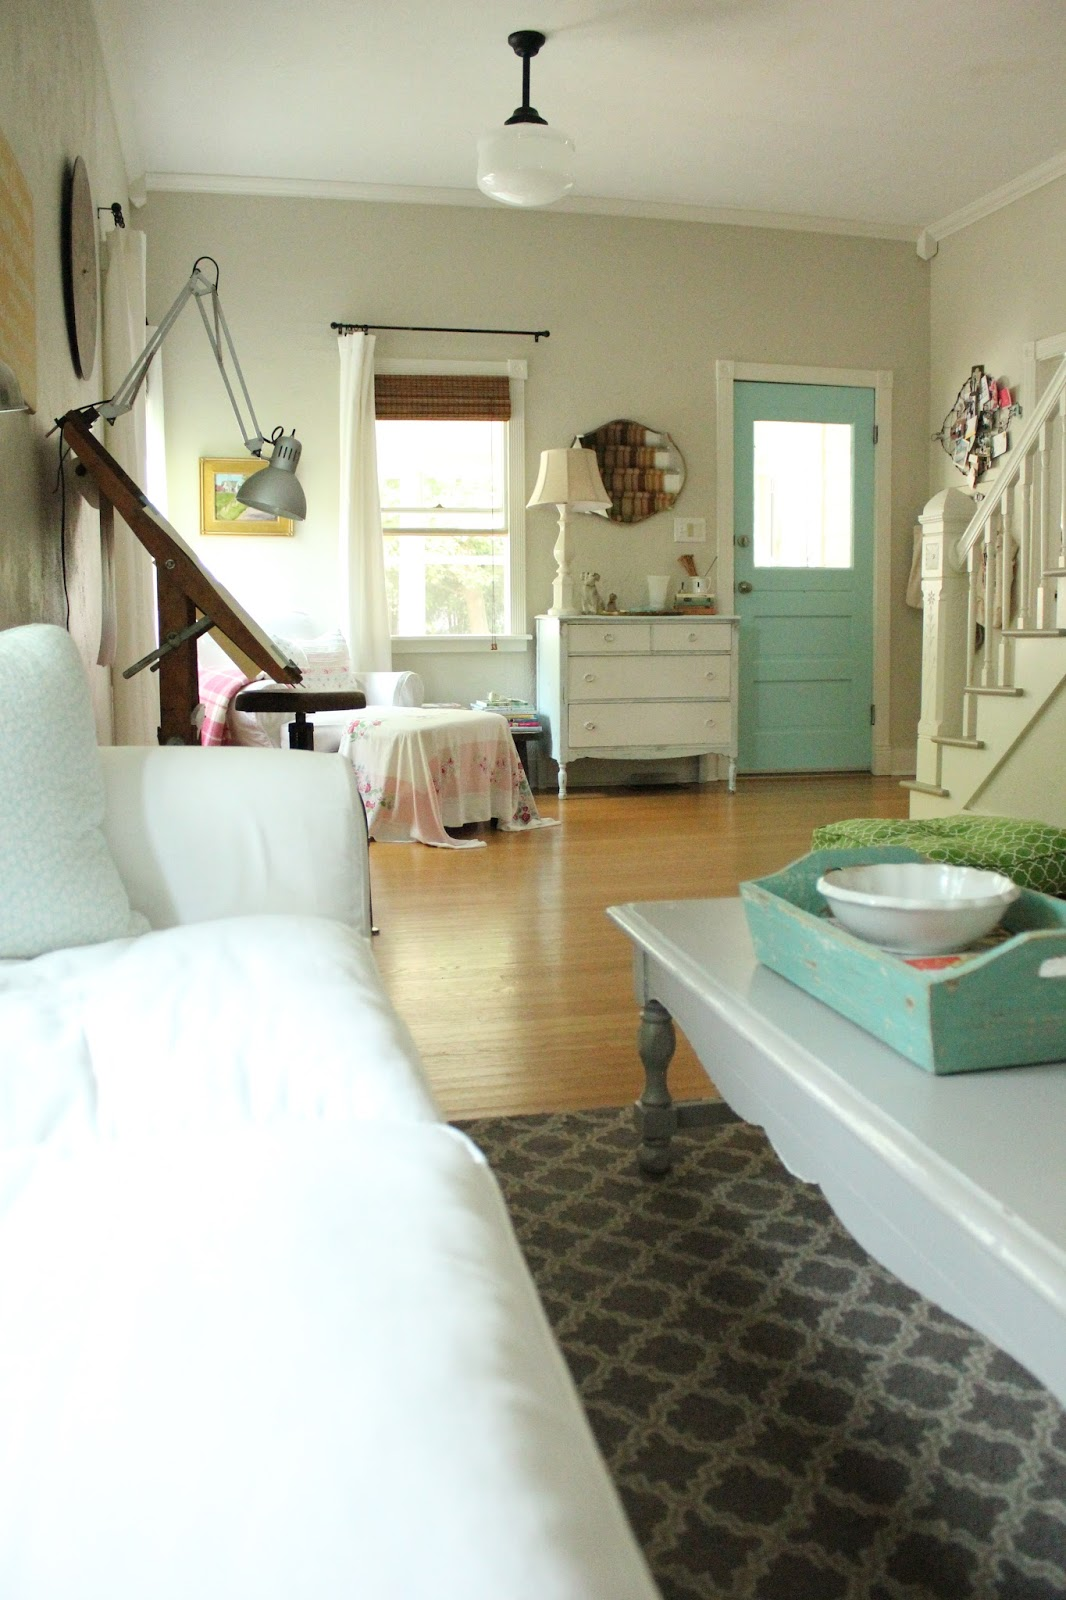 The Cottage Nest: It Pays to be Patient